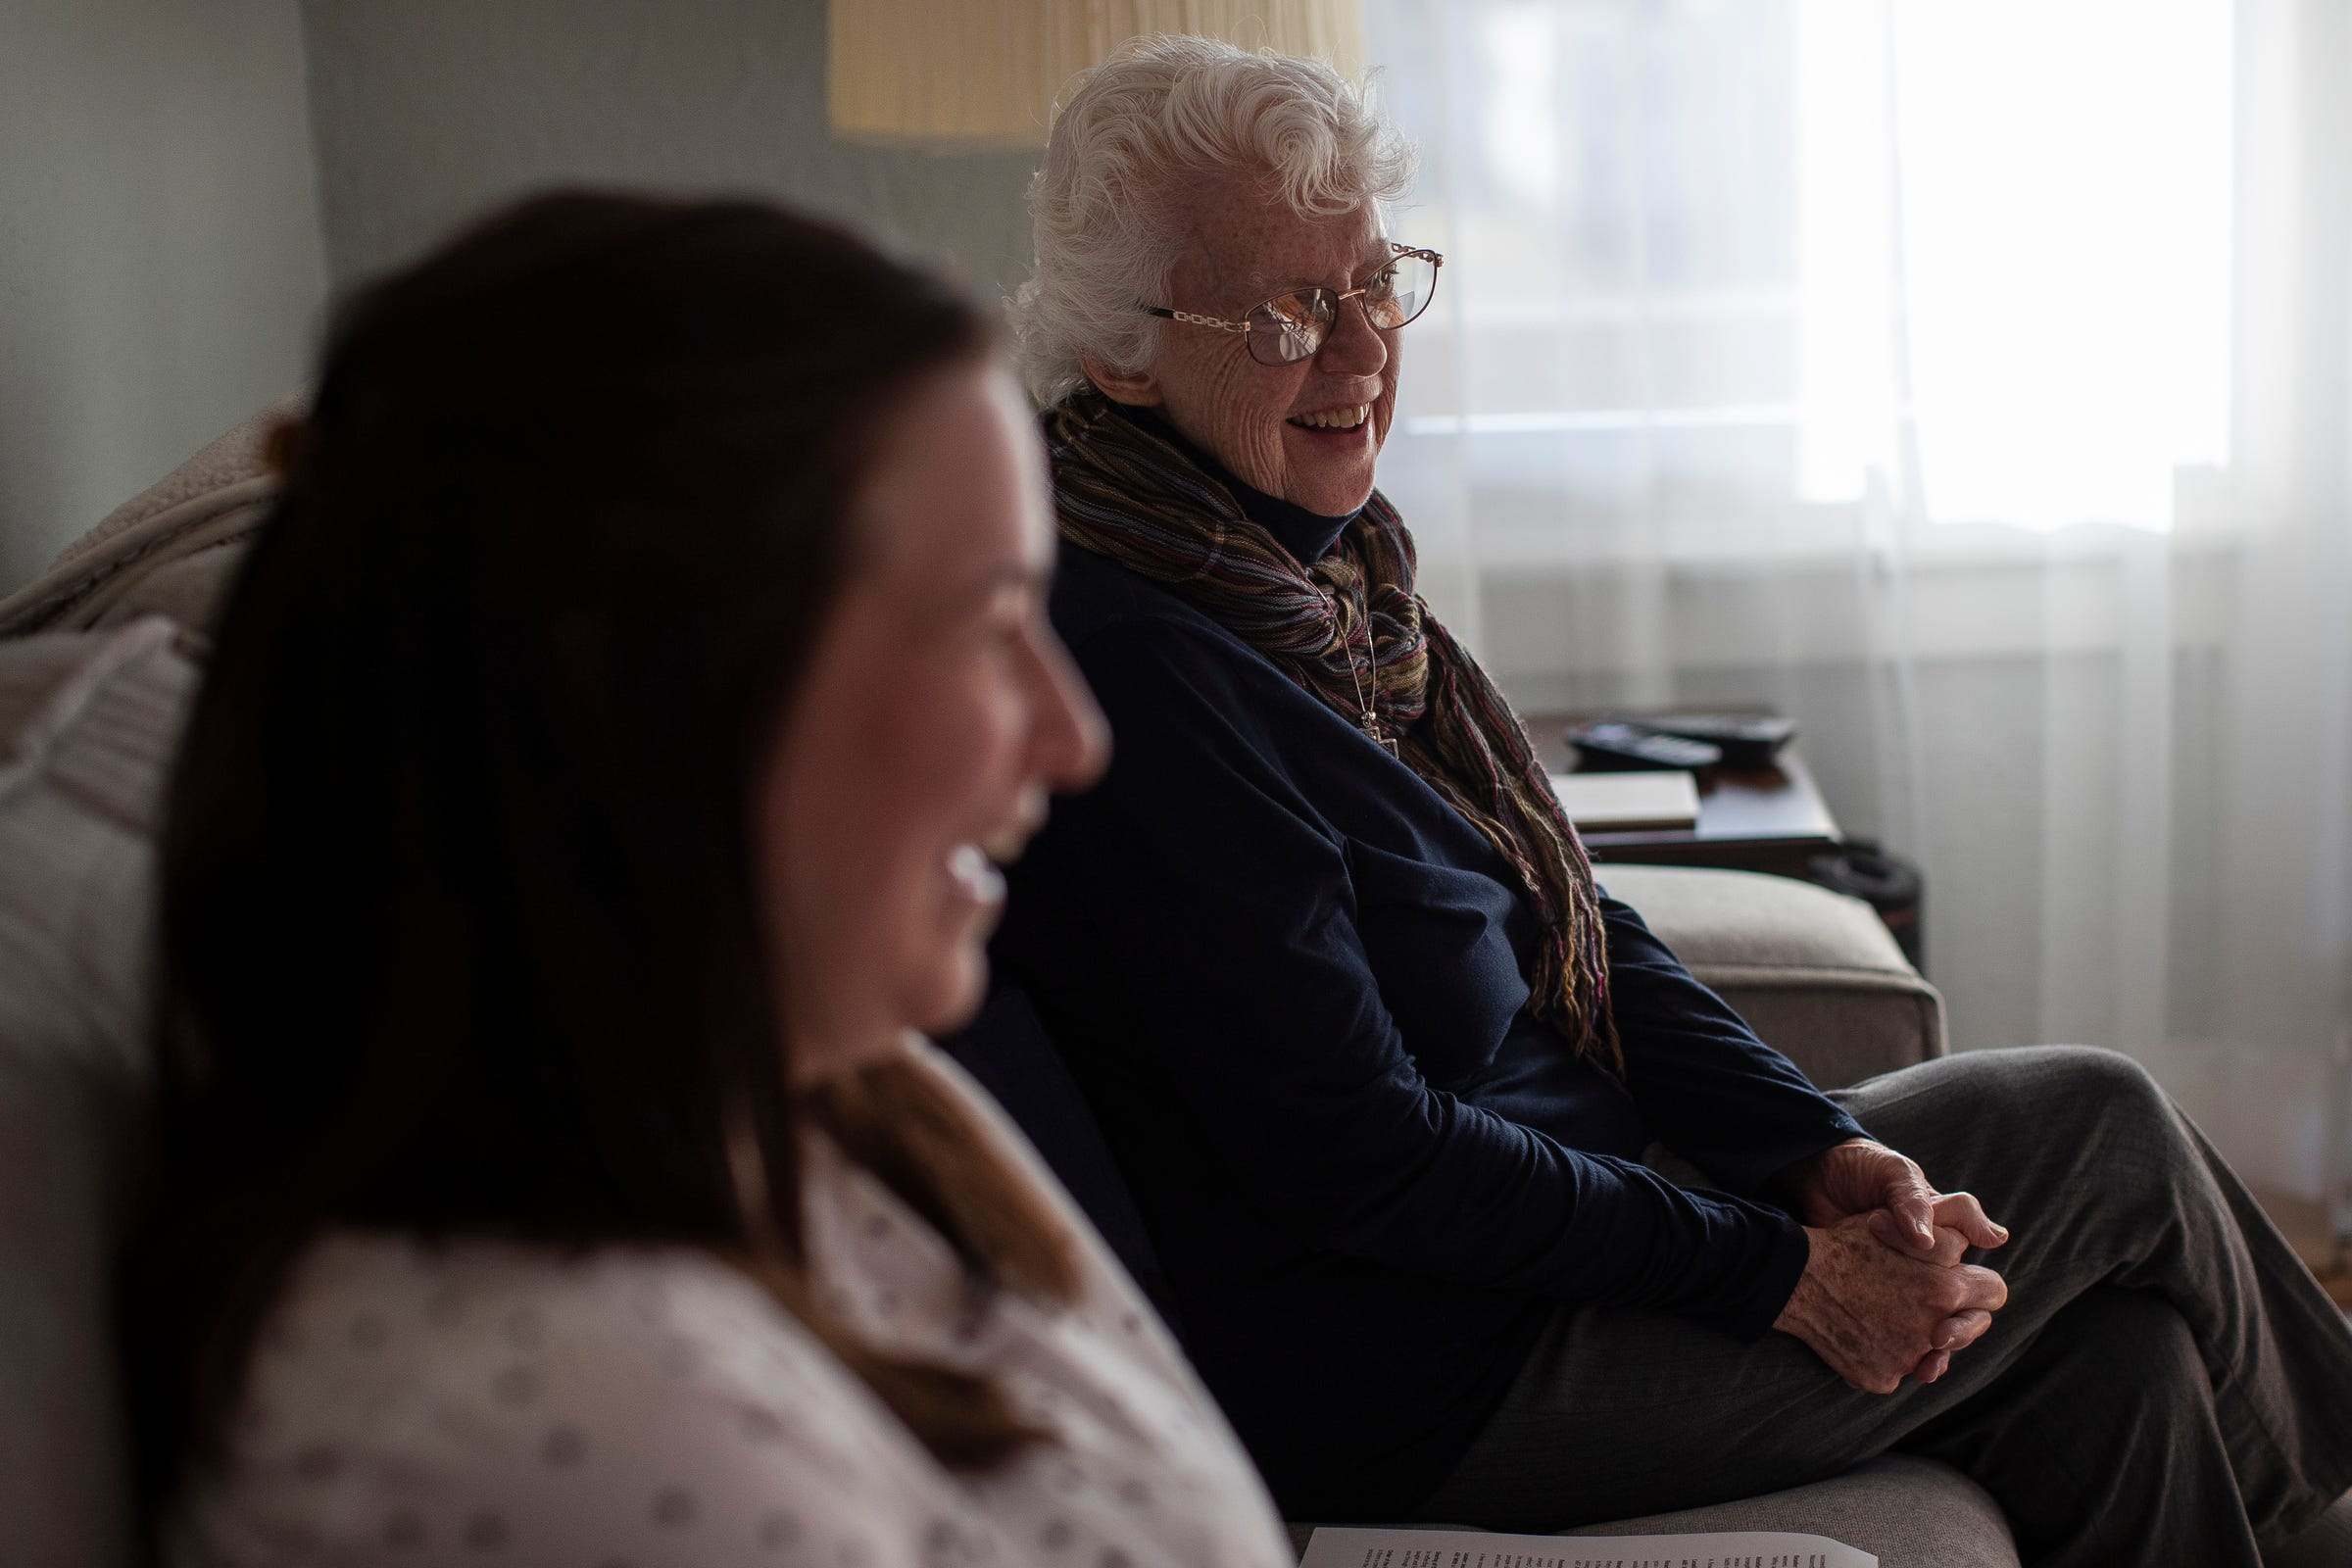 Sister Marcella Clancy shares a laugh with Sister Erin McDonald as they celebrate Saint Joseph's Day at their apartment in Detroit on March 19, 2021.